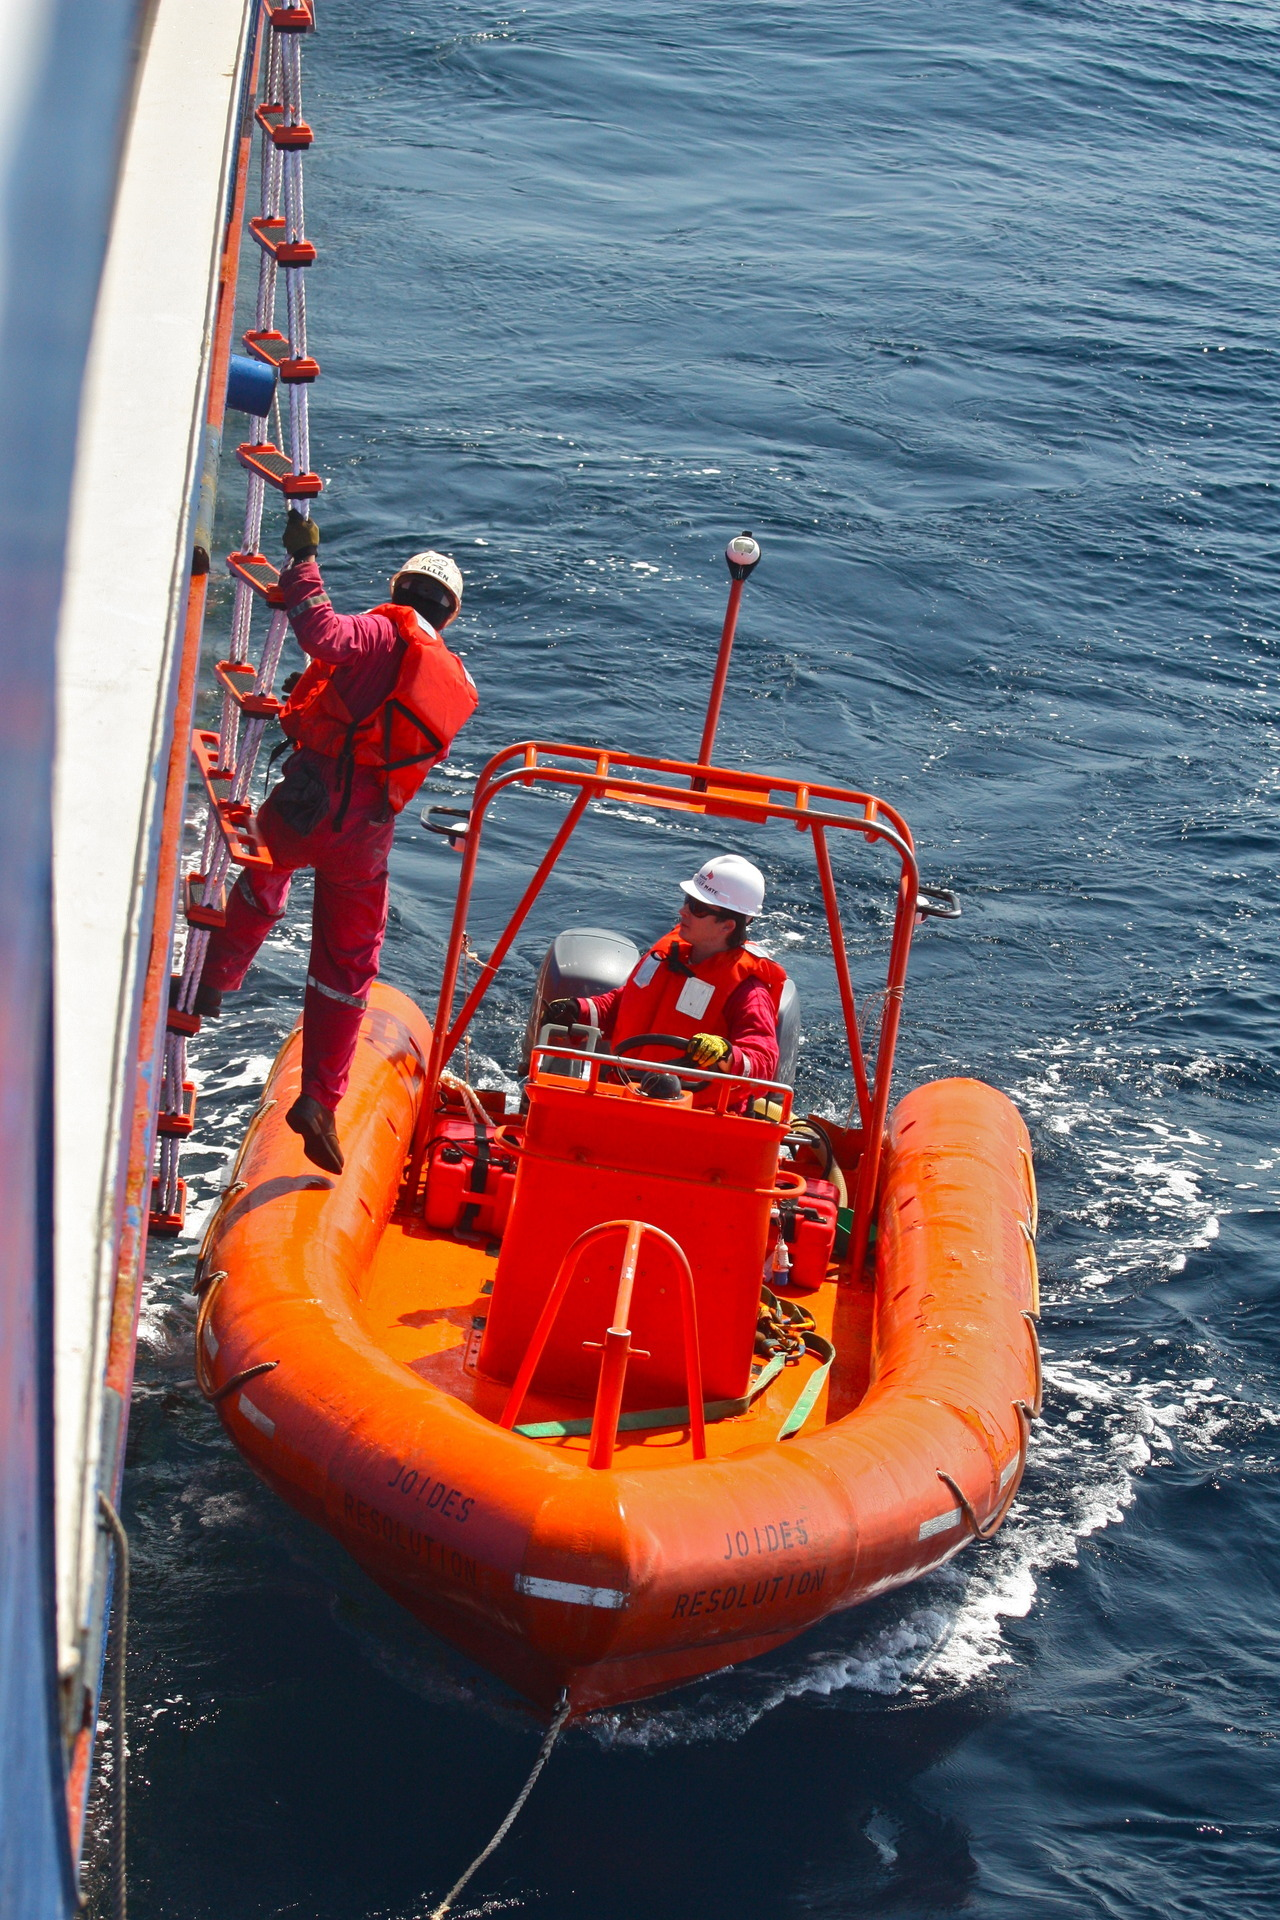 Man overboard drill on a sunny North Atlantic day.